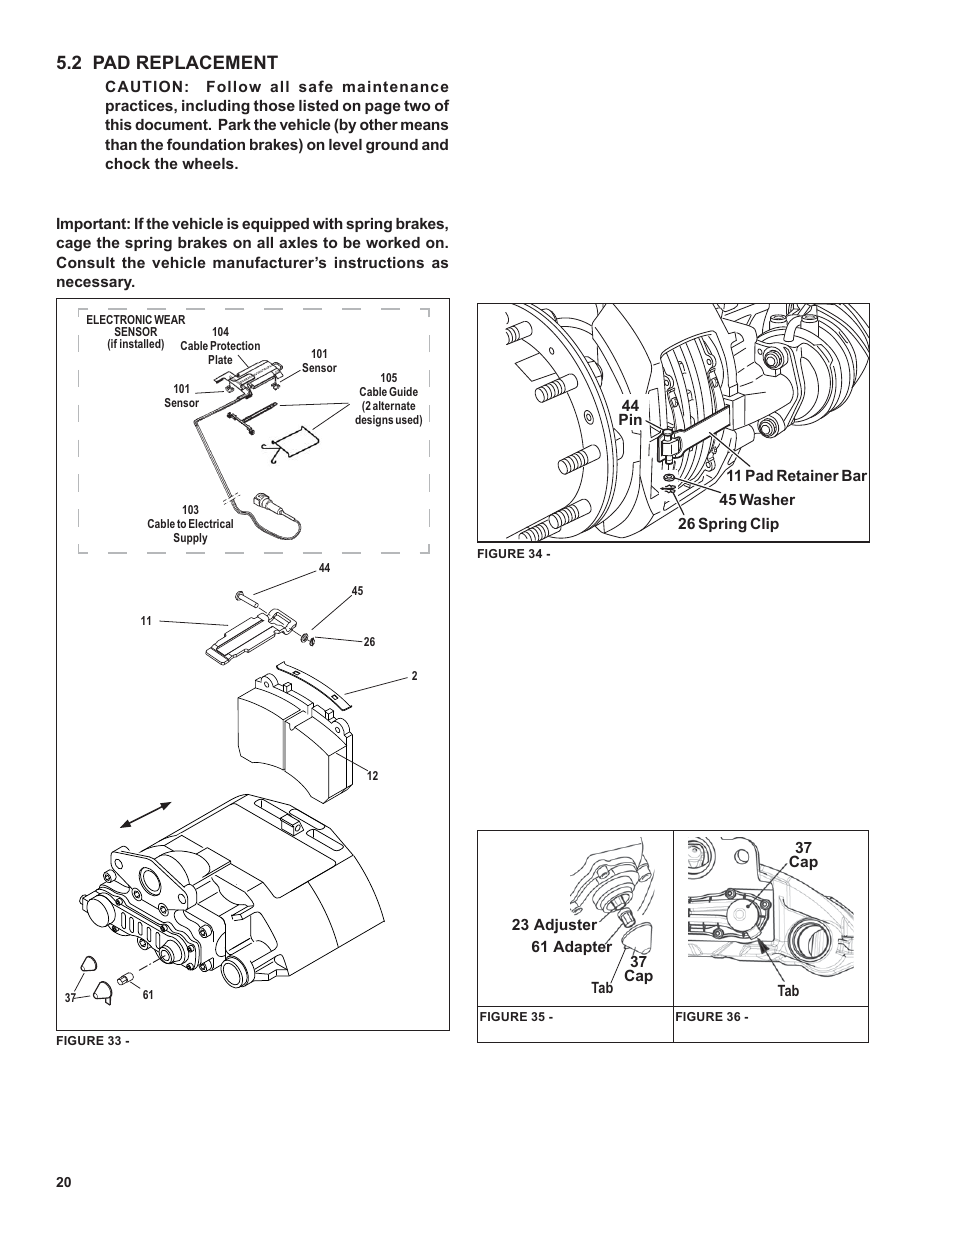 2 pad replacement | Bendix Commercial Vehicle Systems ADB22X-V Air Disc  Brakes User Manual